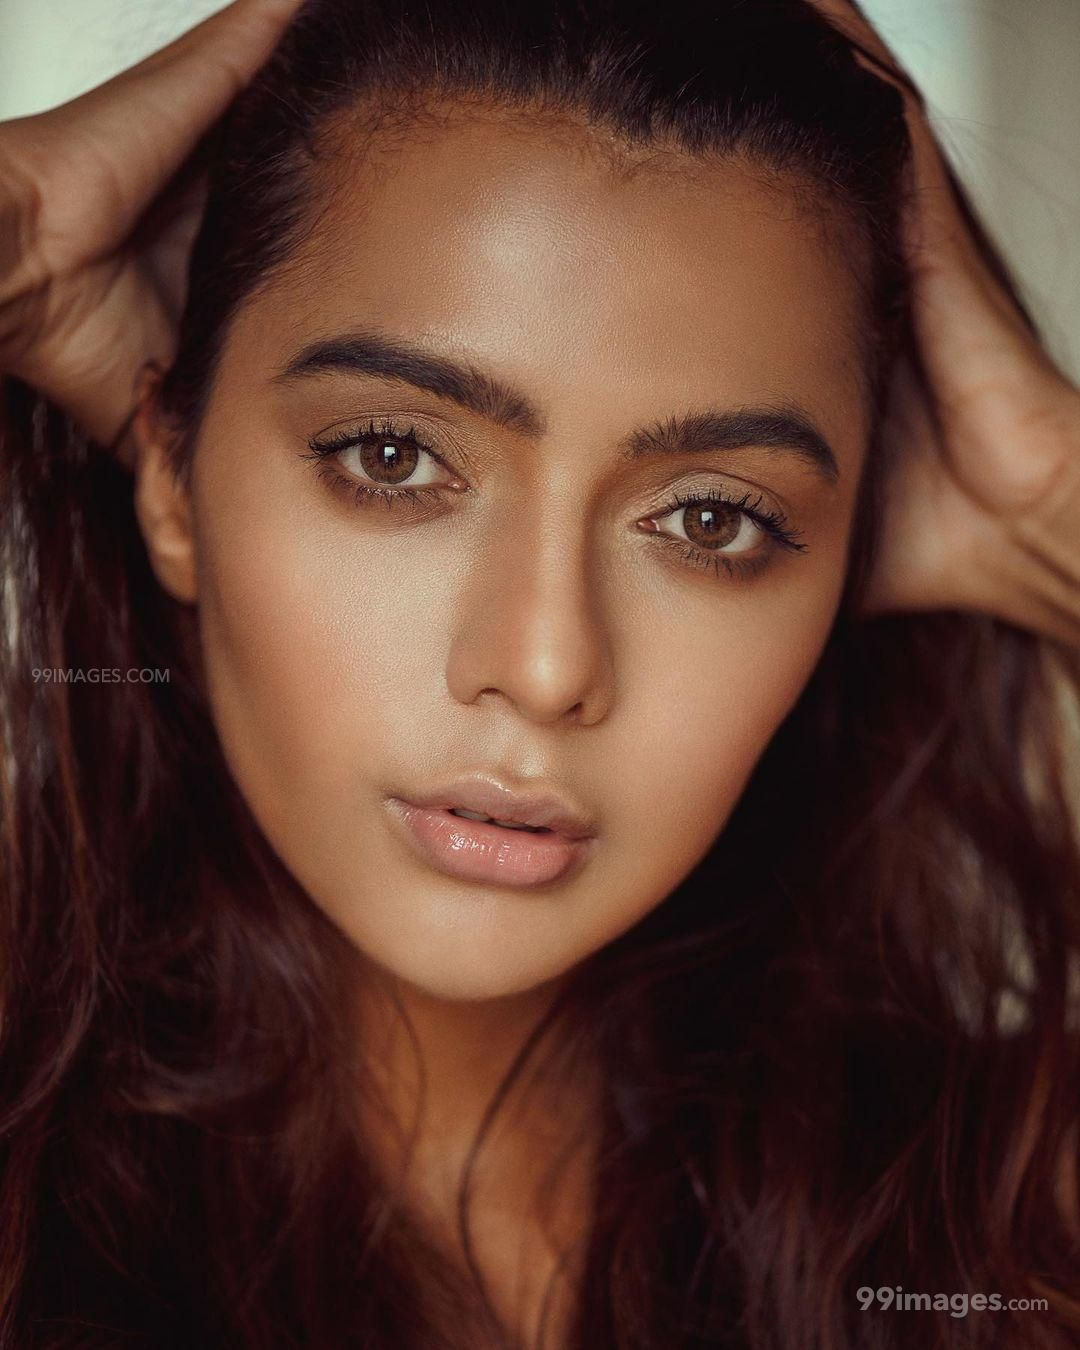 Ruhi Dilip Singh HD Wallpapers (Desktop Background / Android / iPhone) (1080p, 4k)